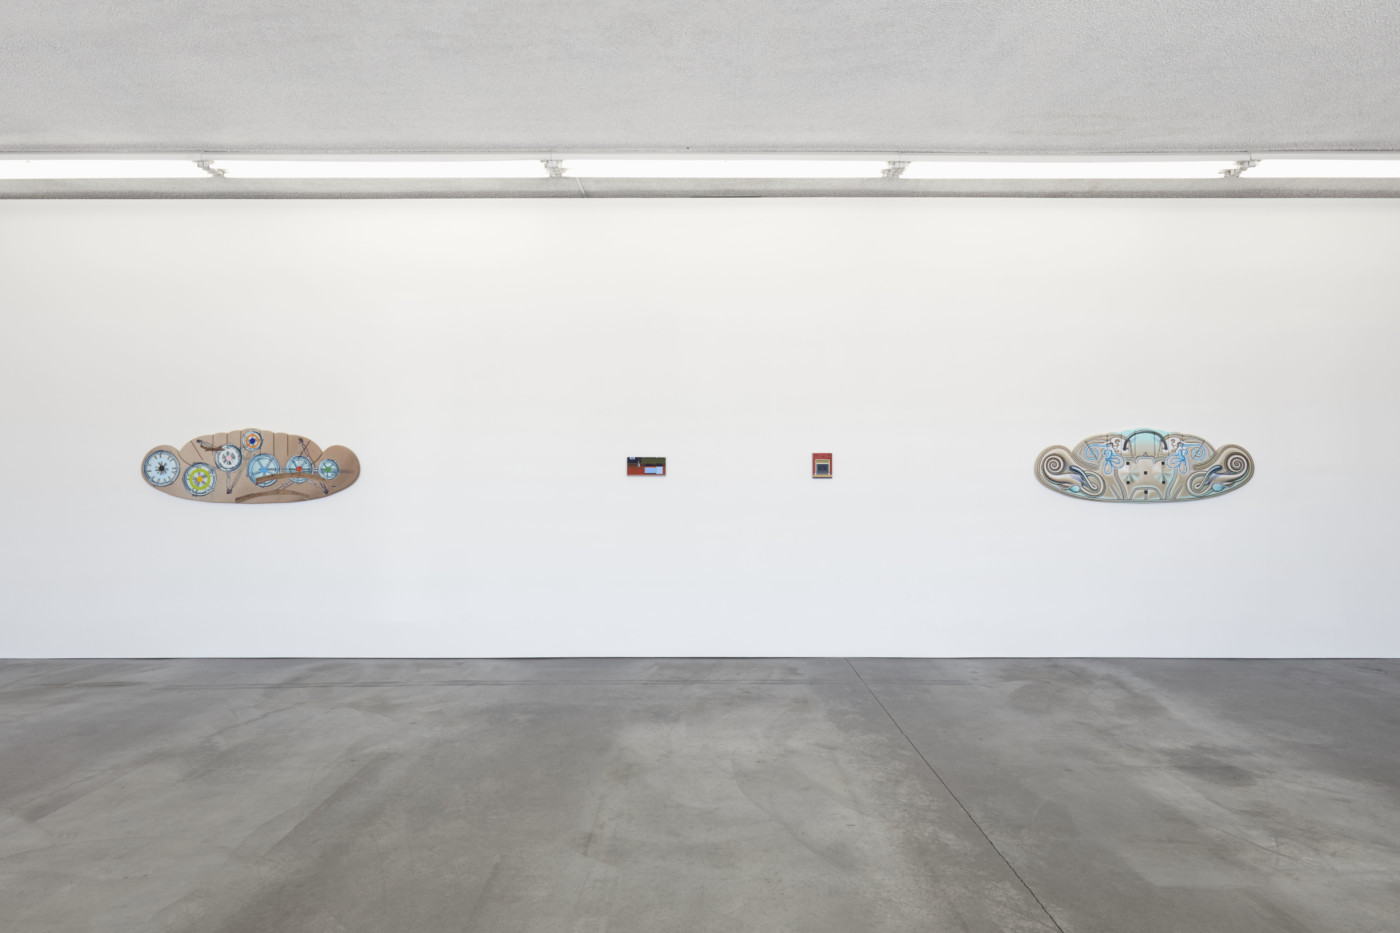 ORION MARTIN  Bolthole,  2019, POTTS, Los Angeles, USA, installation view - High Art Gallery Paris